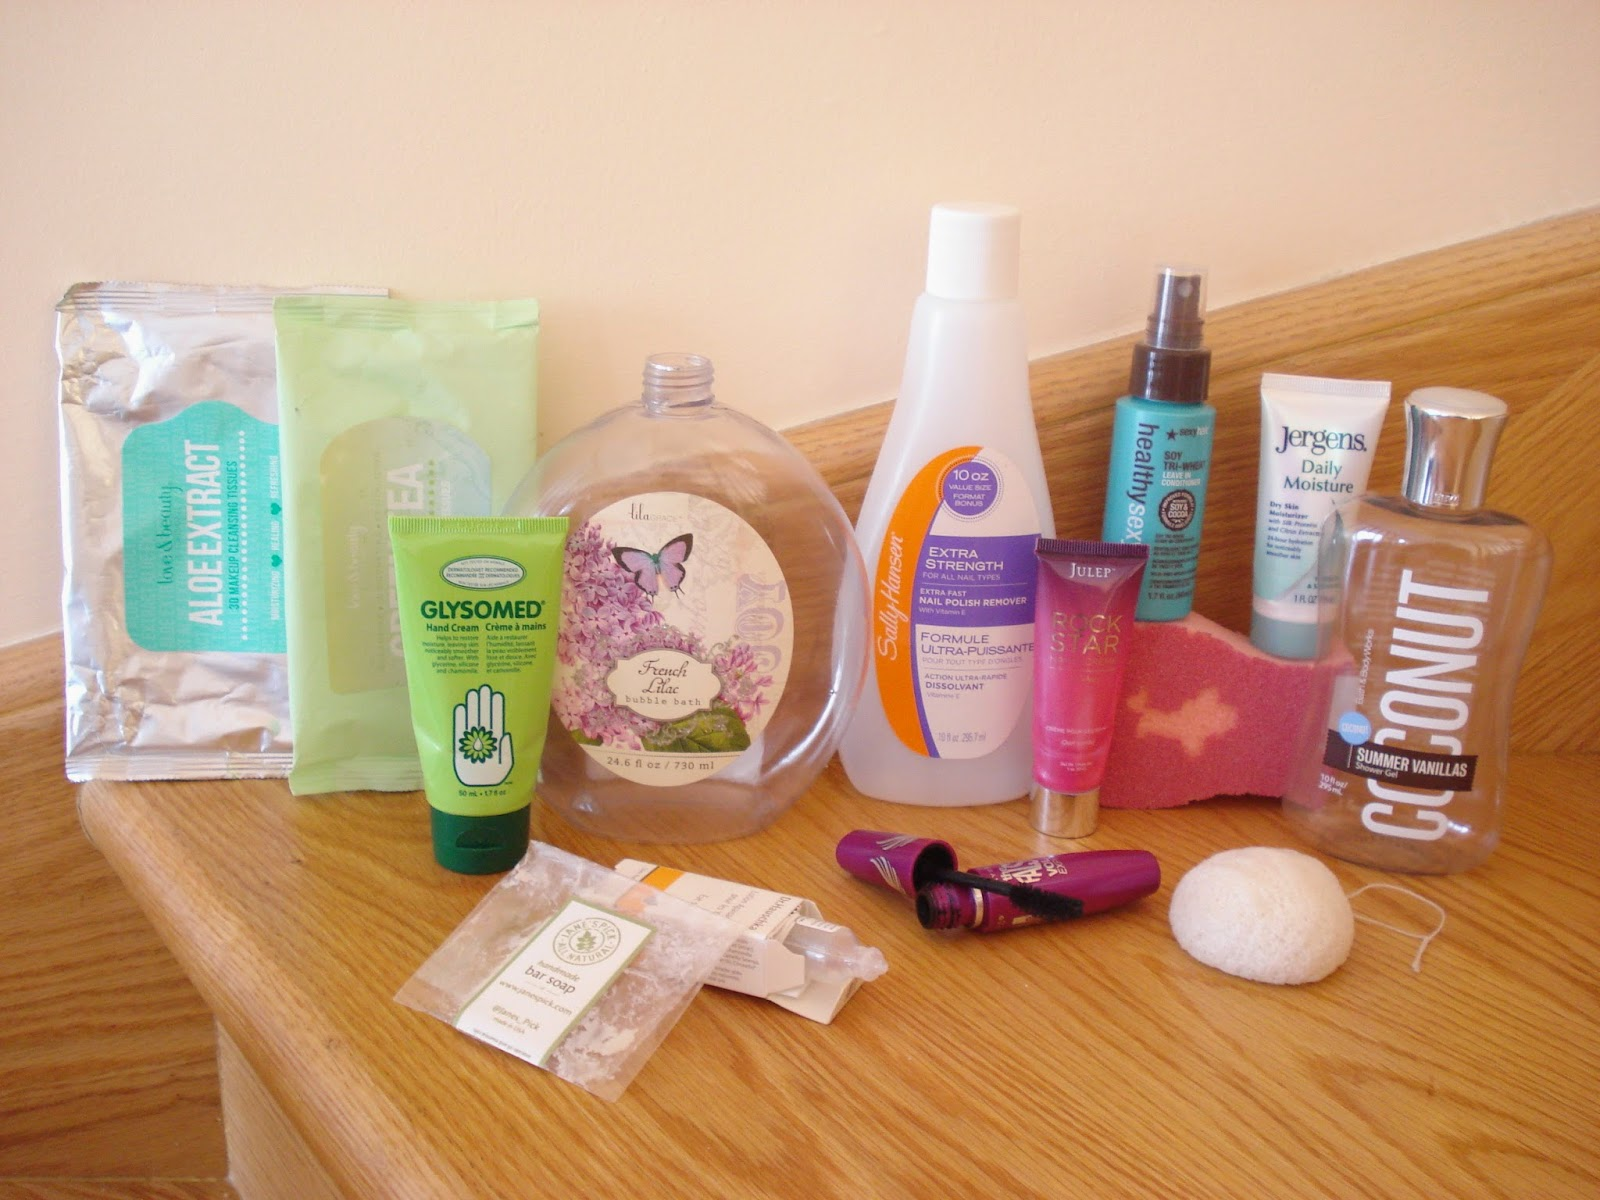 http://magnificent-road.blogspot.ca/2014/04/monthly-empties-march-2014.html